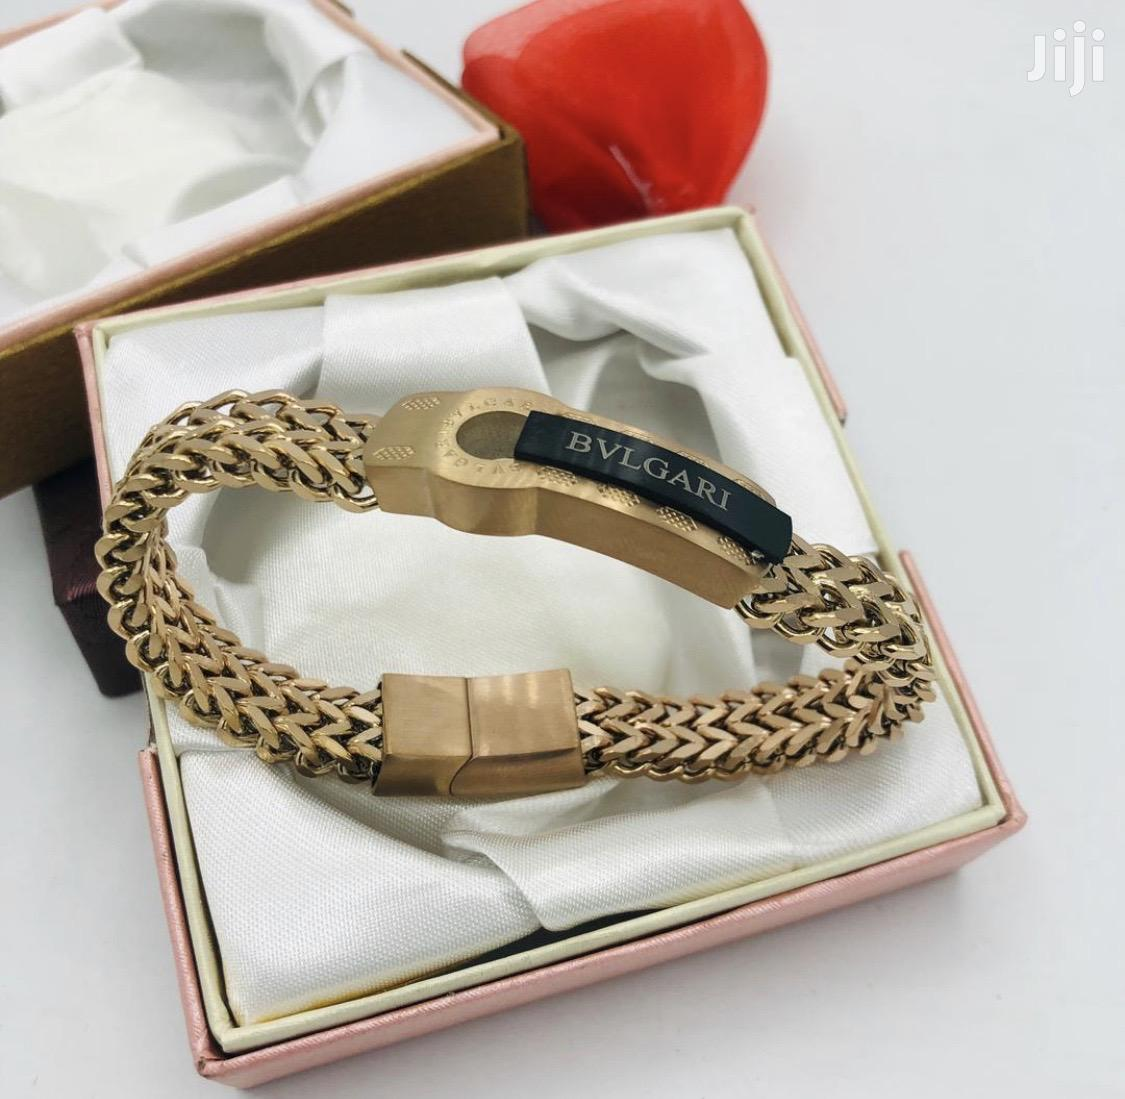 BVLGARI Bracelet | Jewelry for sale in East Legon, Greater Accra, Ghana